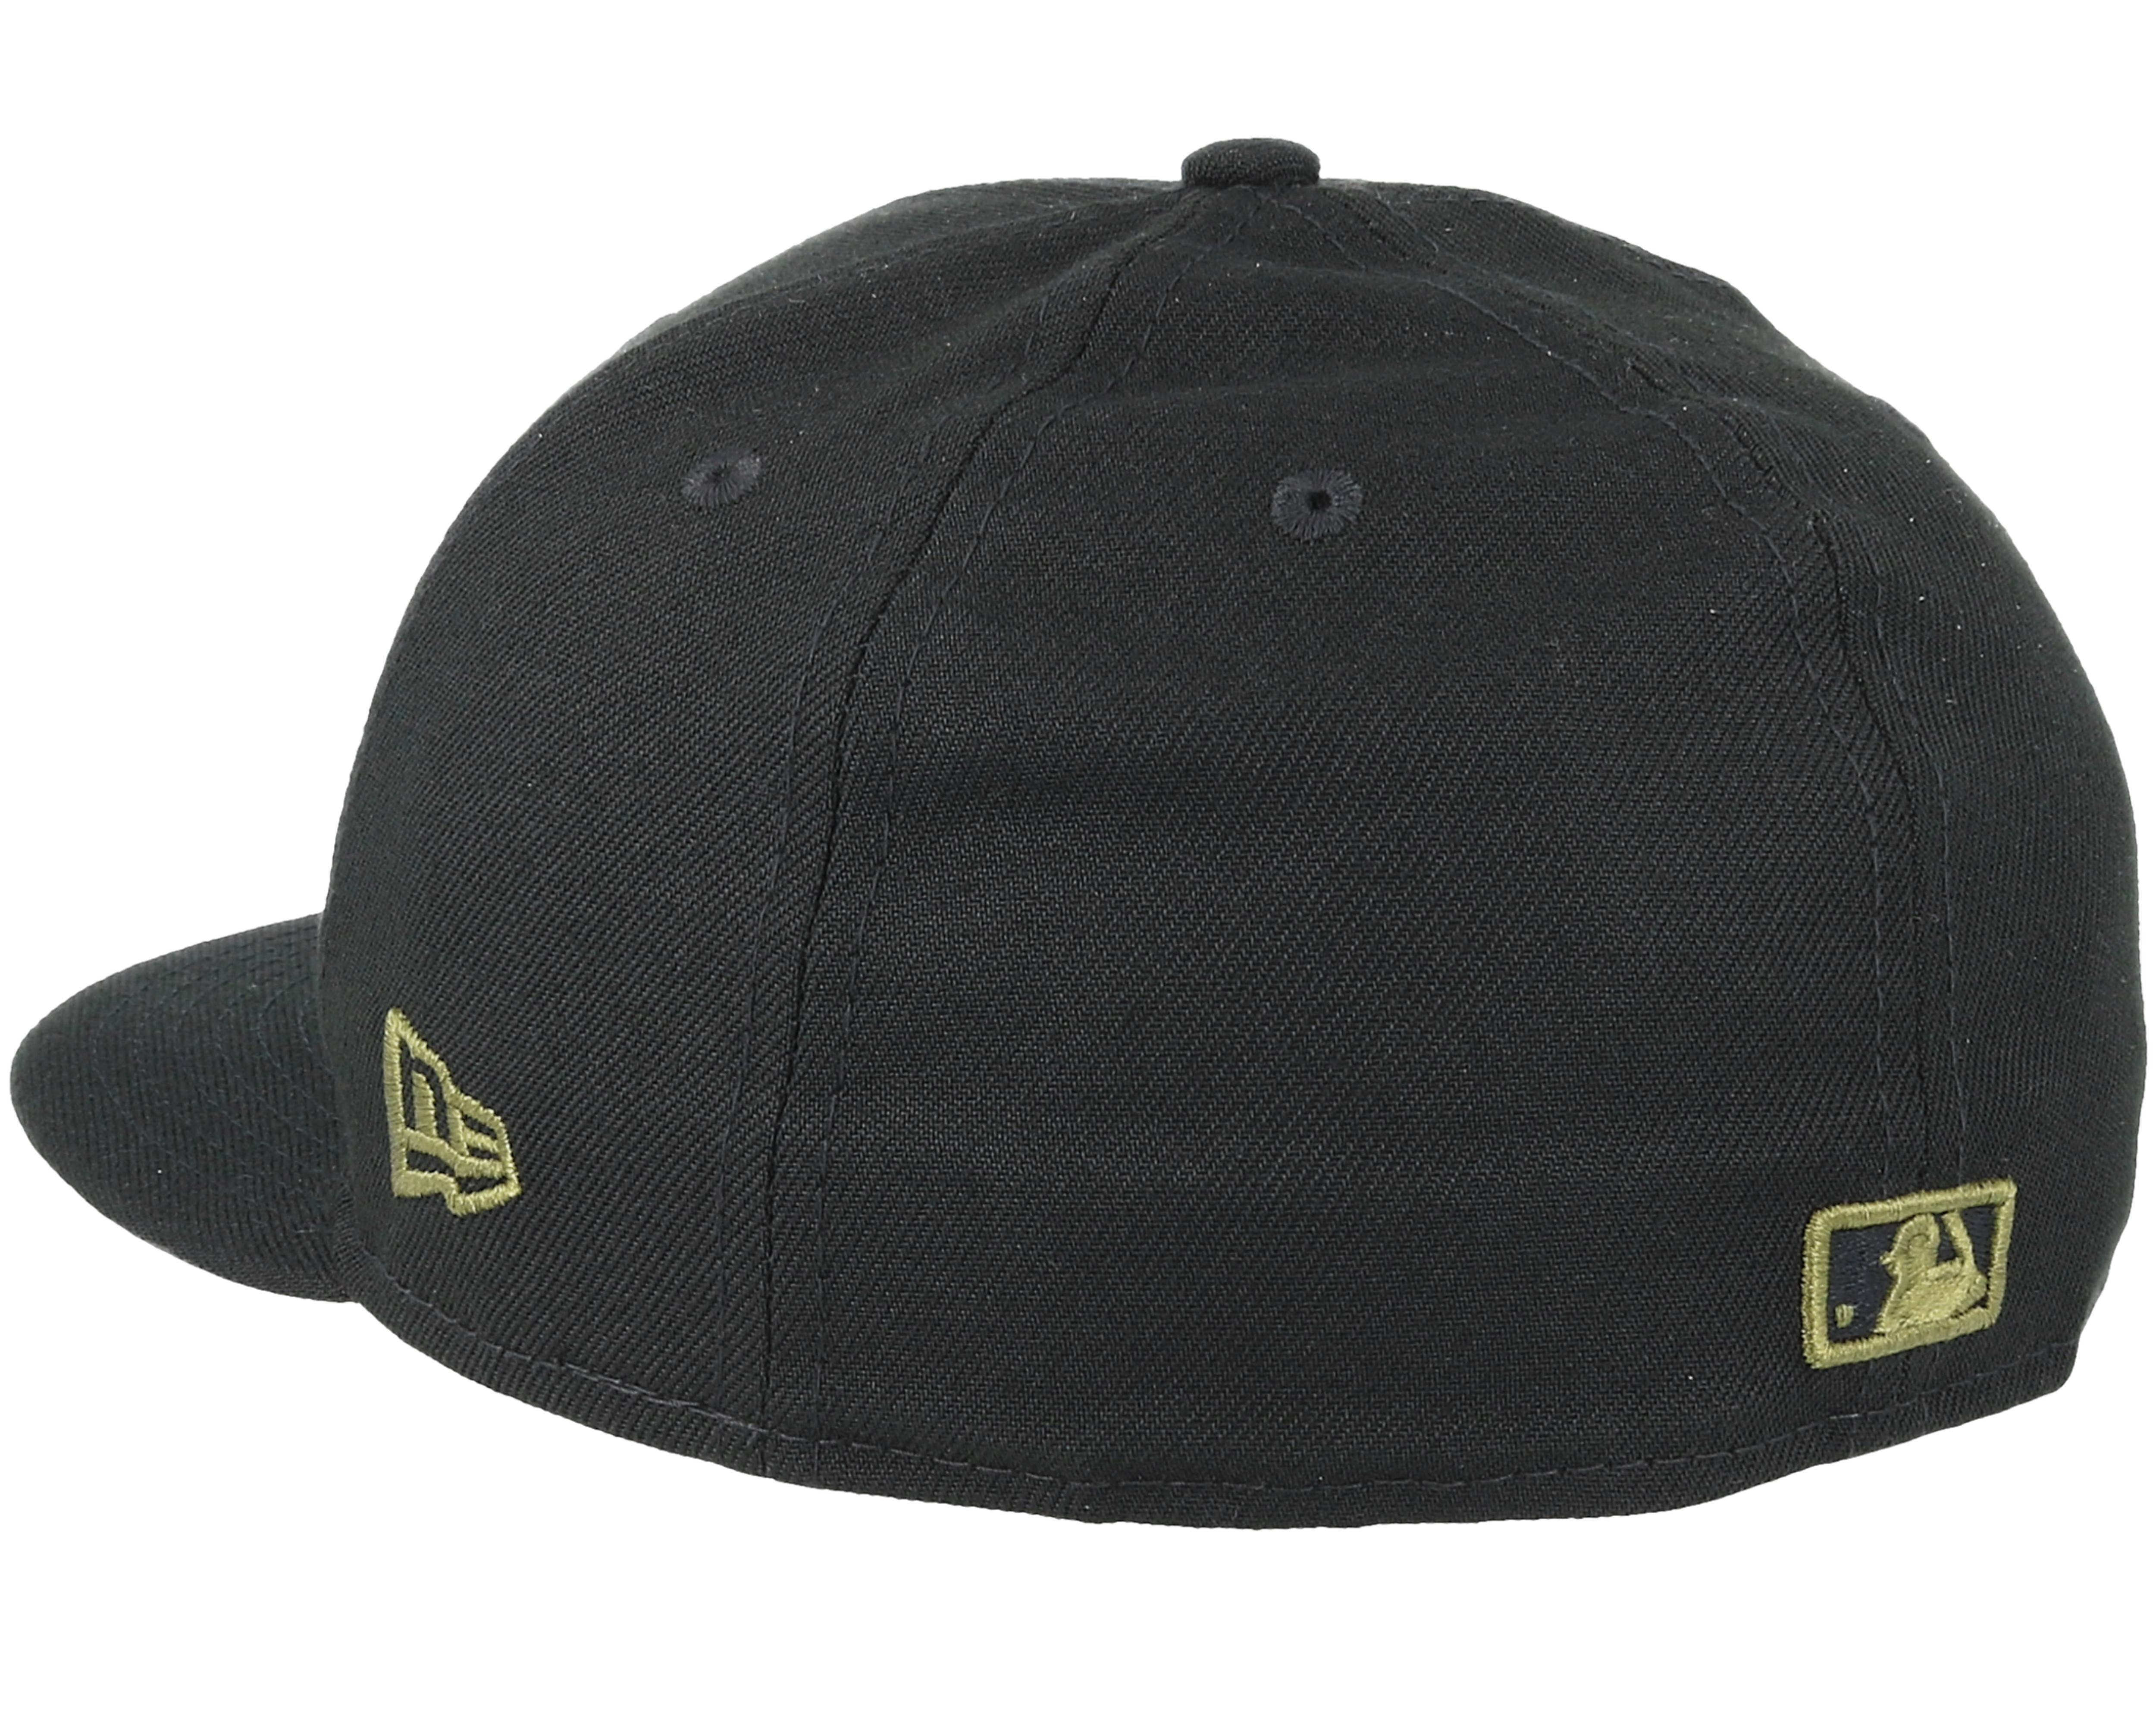 Los Angeles Dodgers 59fifty League Essential Black Olive